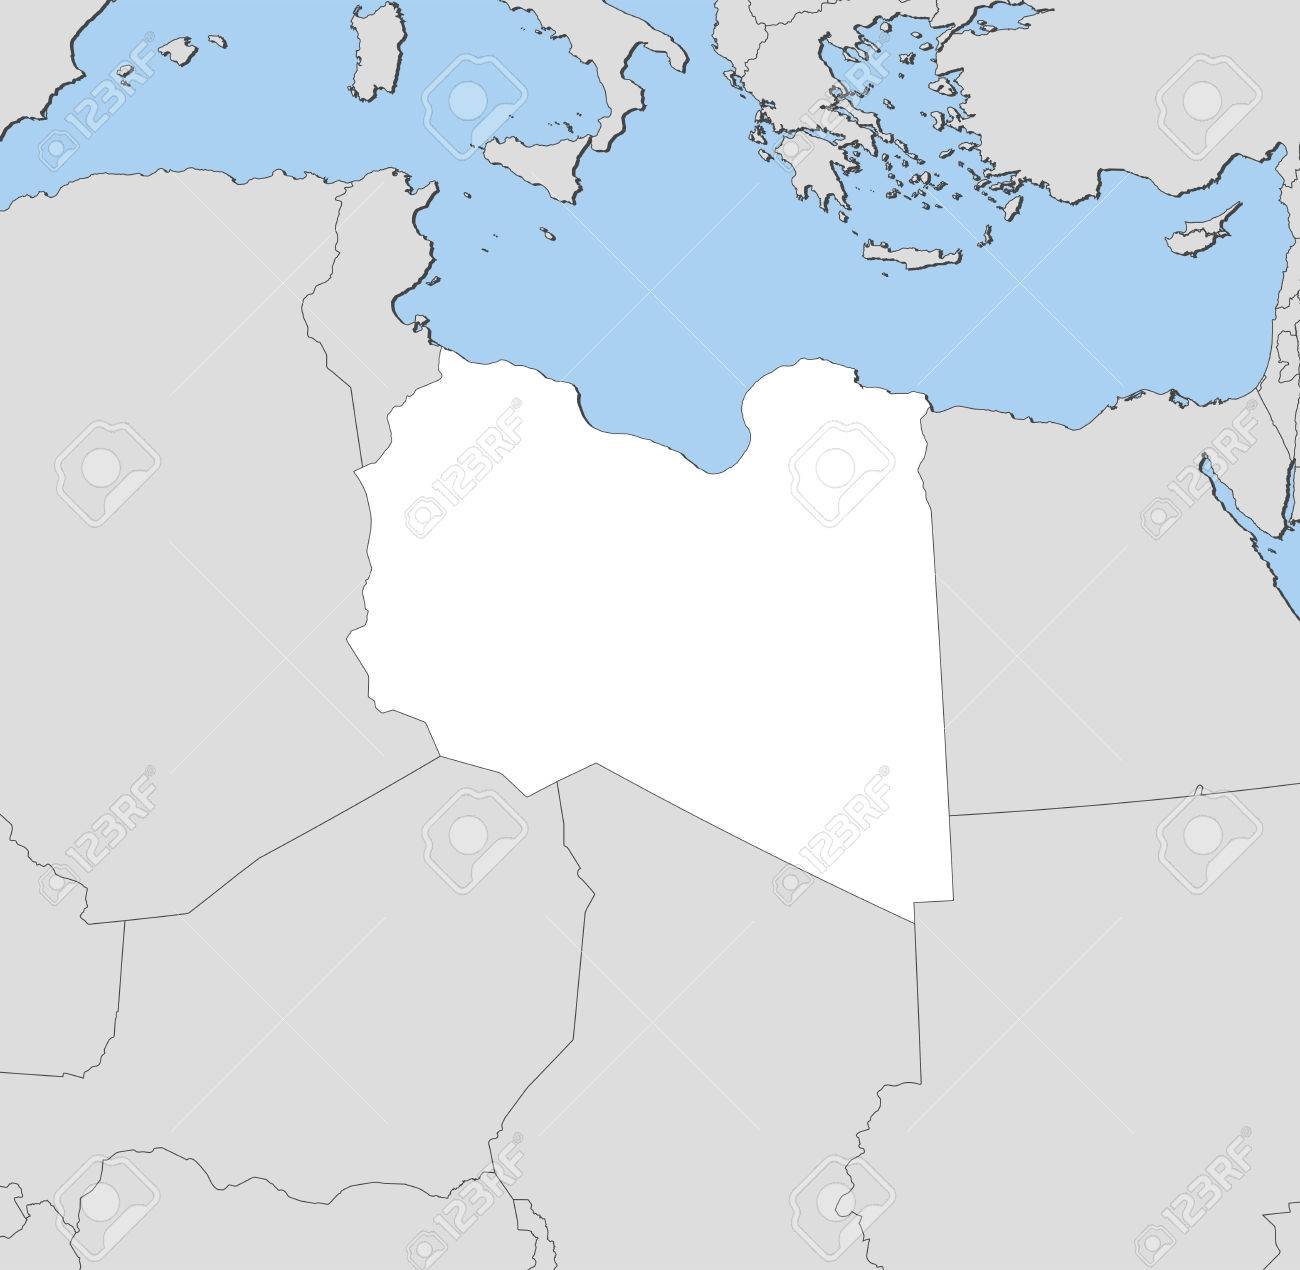 Map of libya and nearby countries libya is highlighted in white map of libya and nearby countries libya is highlighted in white stock vector gumiabroncs Choice Image